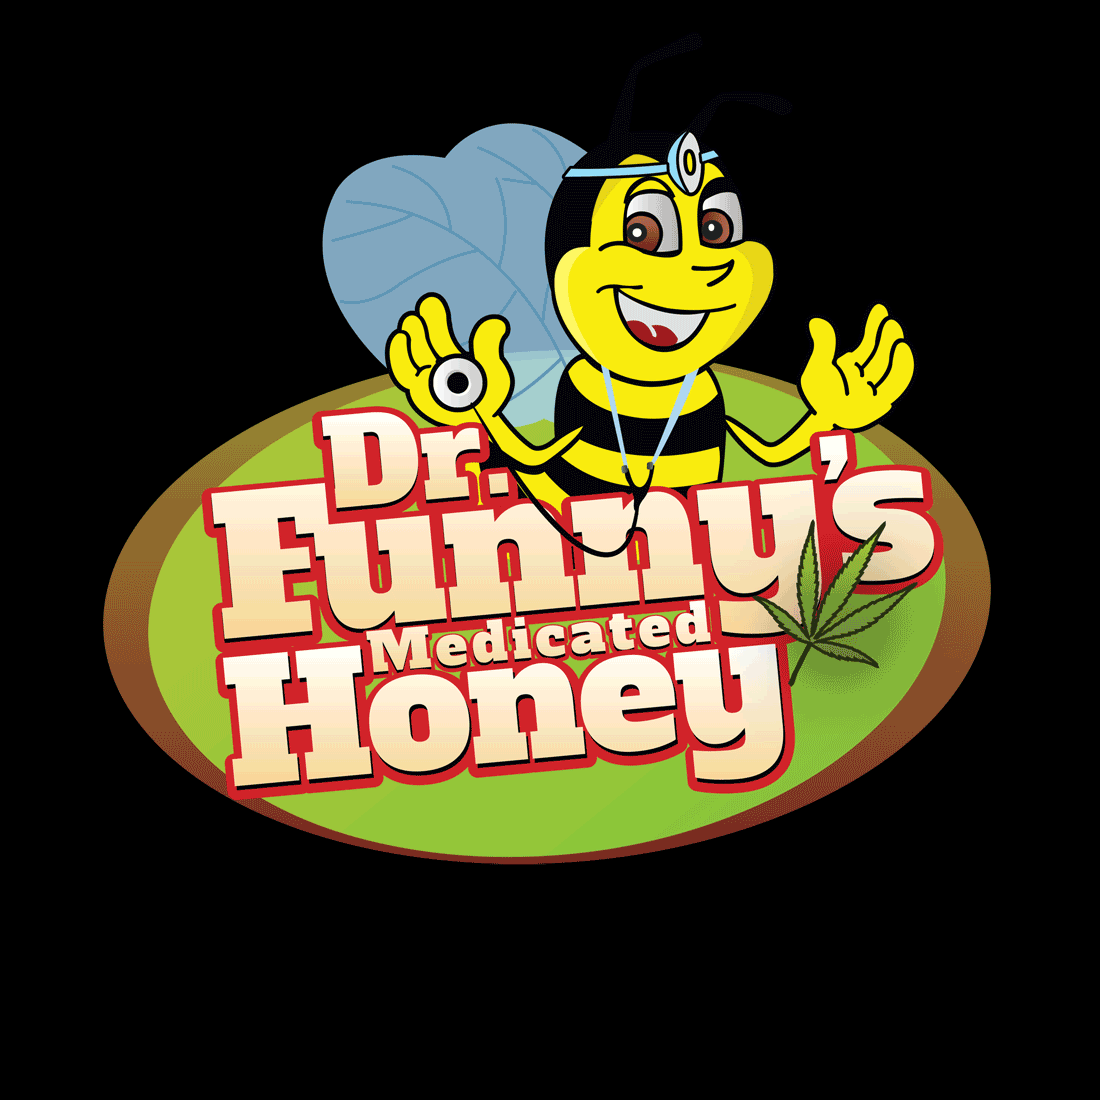 Dr. Funny's medicated honey